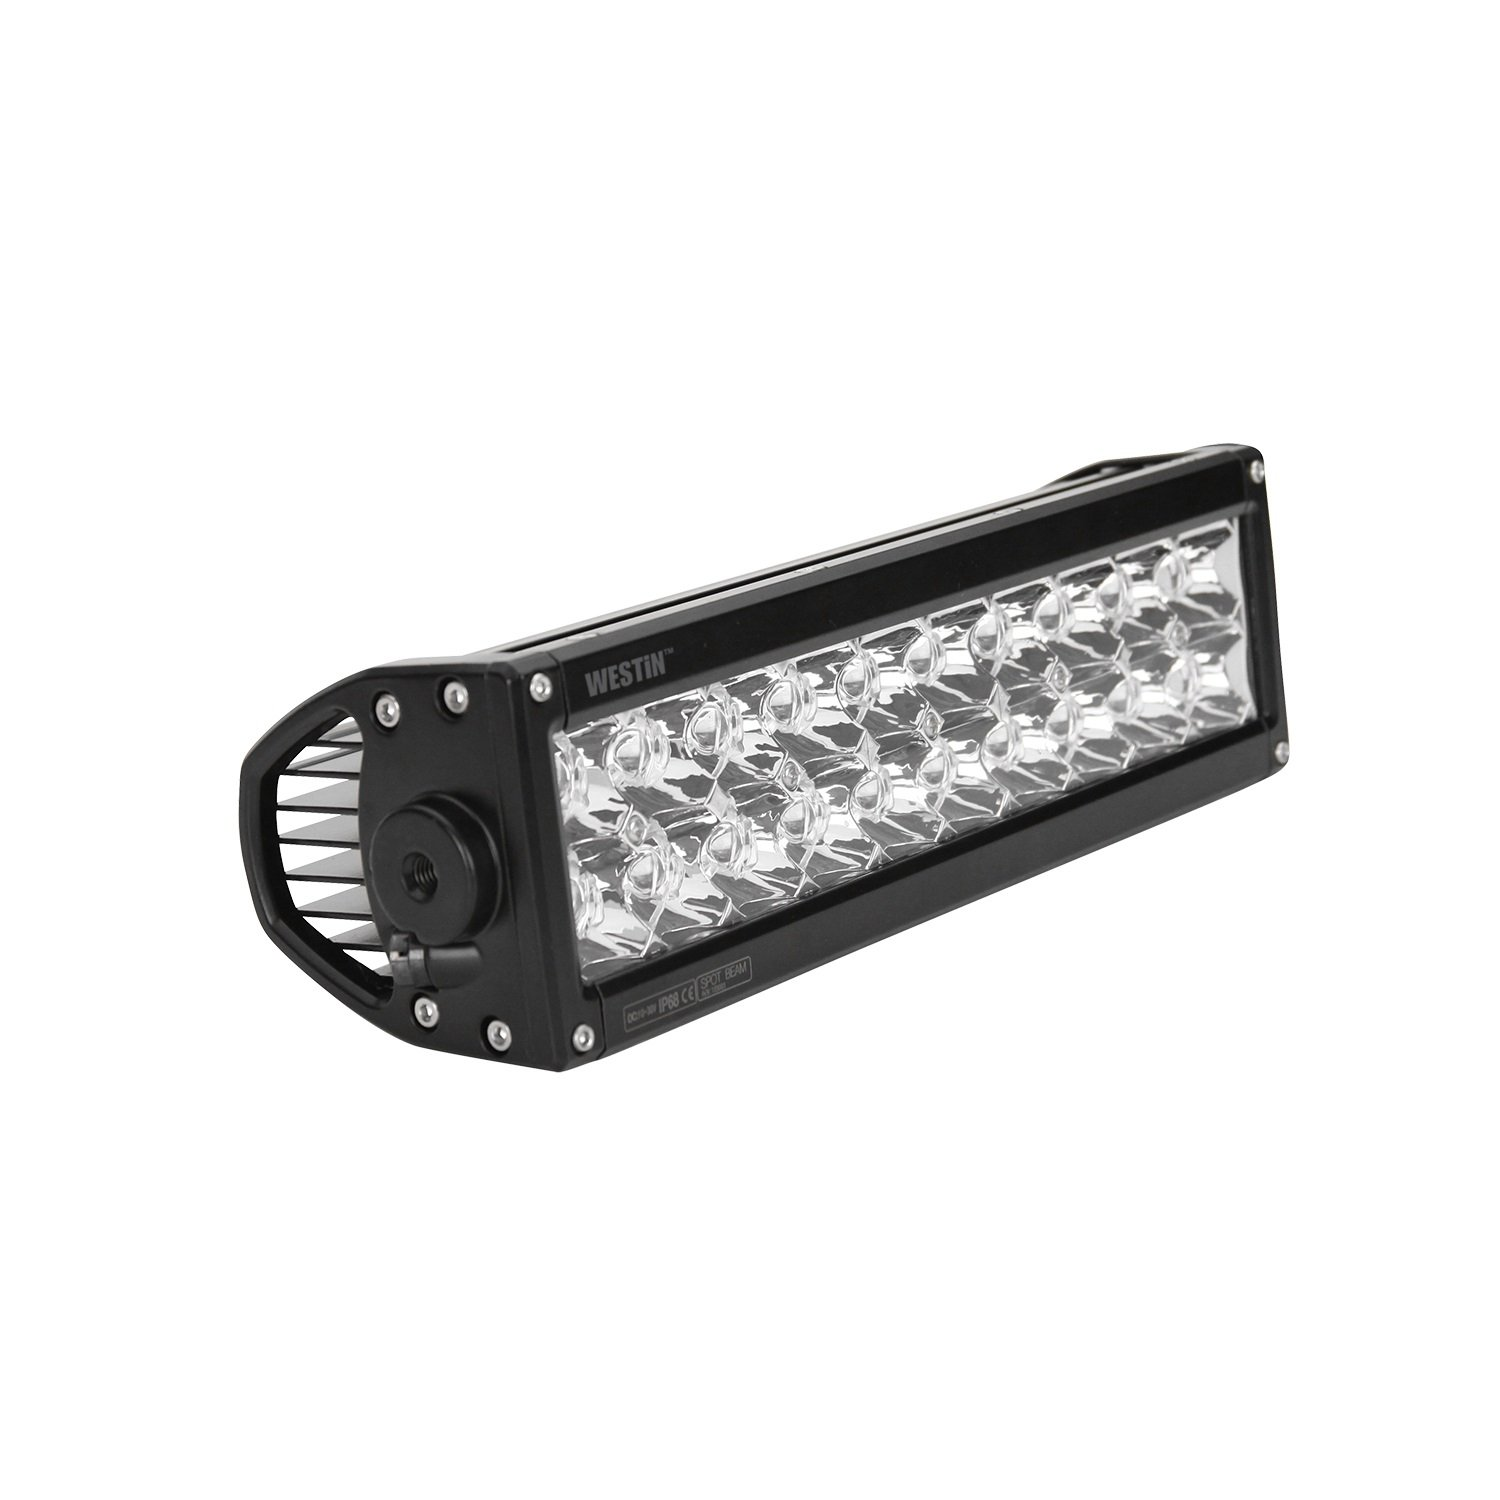 Amazon westin 09 12230 20f low profile double row led light bar amazon westin 09 12230 20f low profile double row led light bar automotive aloadofball Image collections